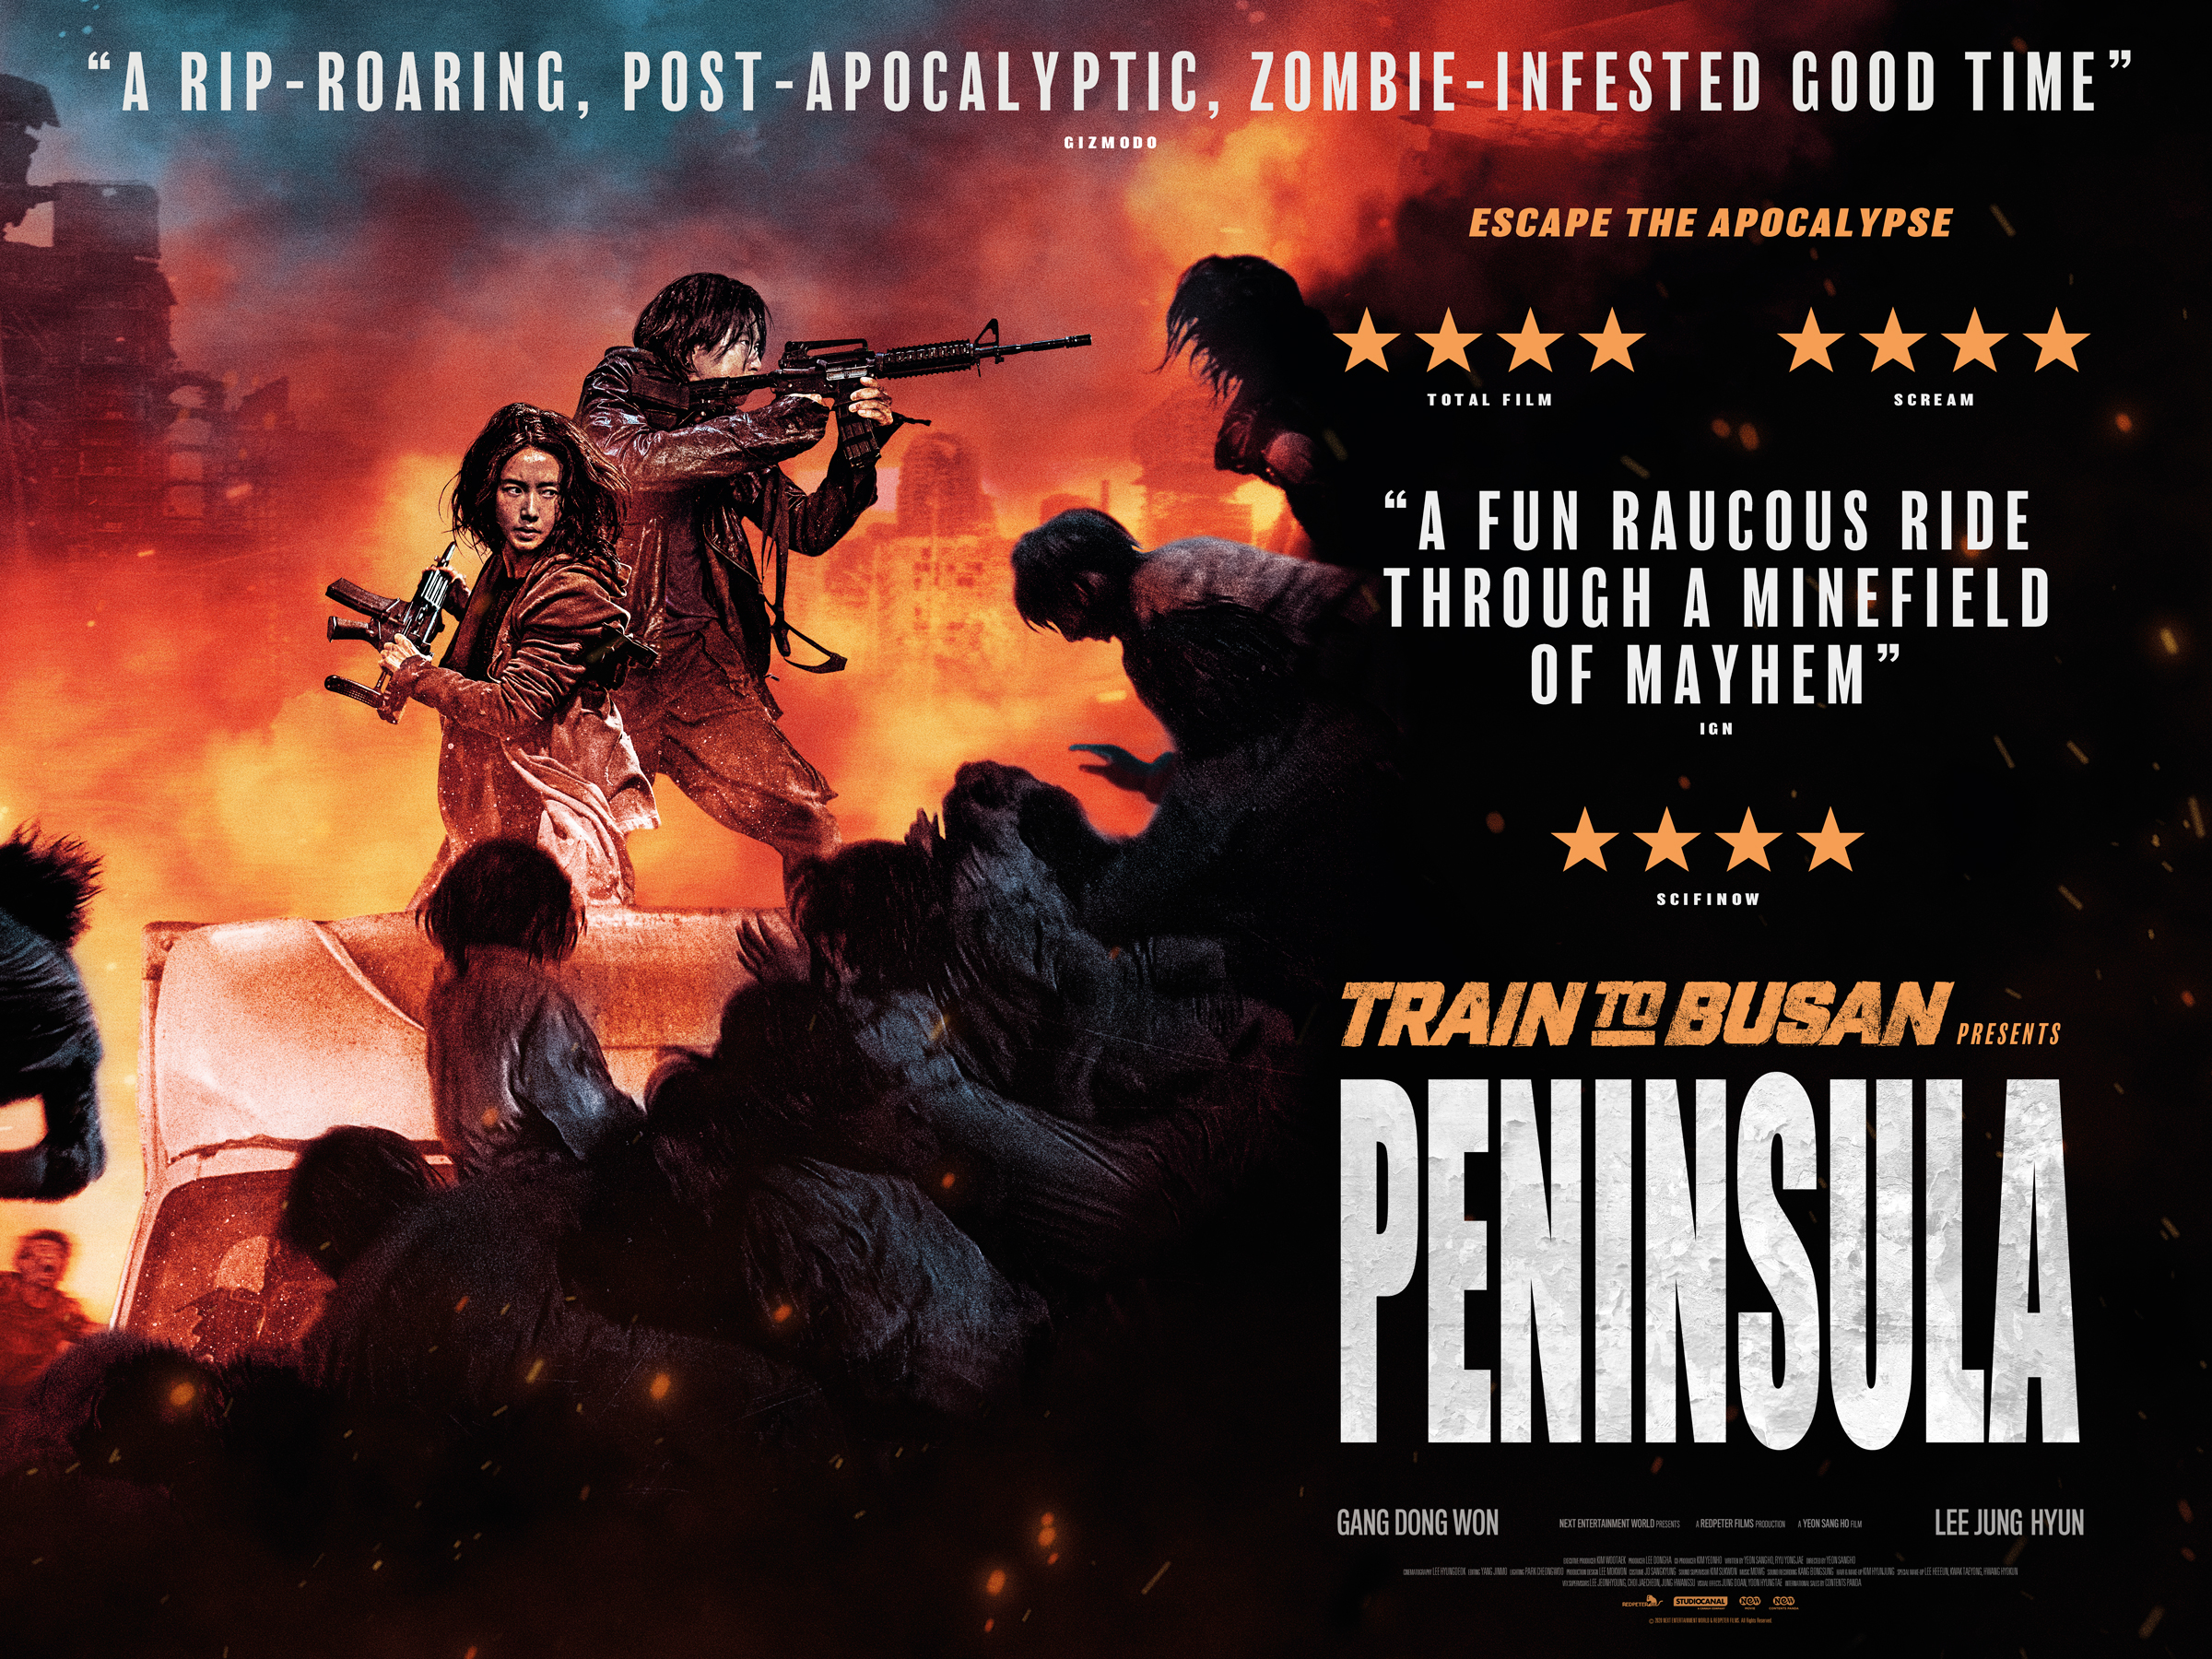 Train To Busan Presents Peninsula review: Action K-zom